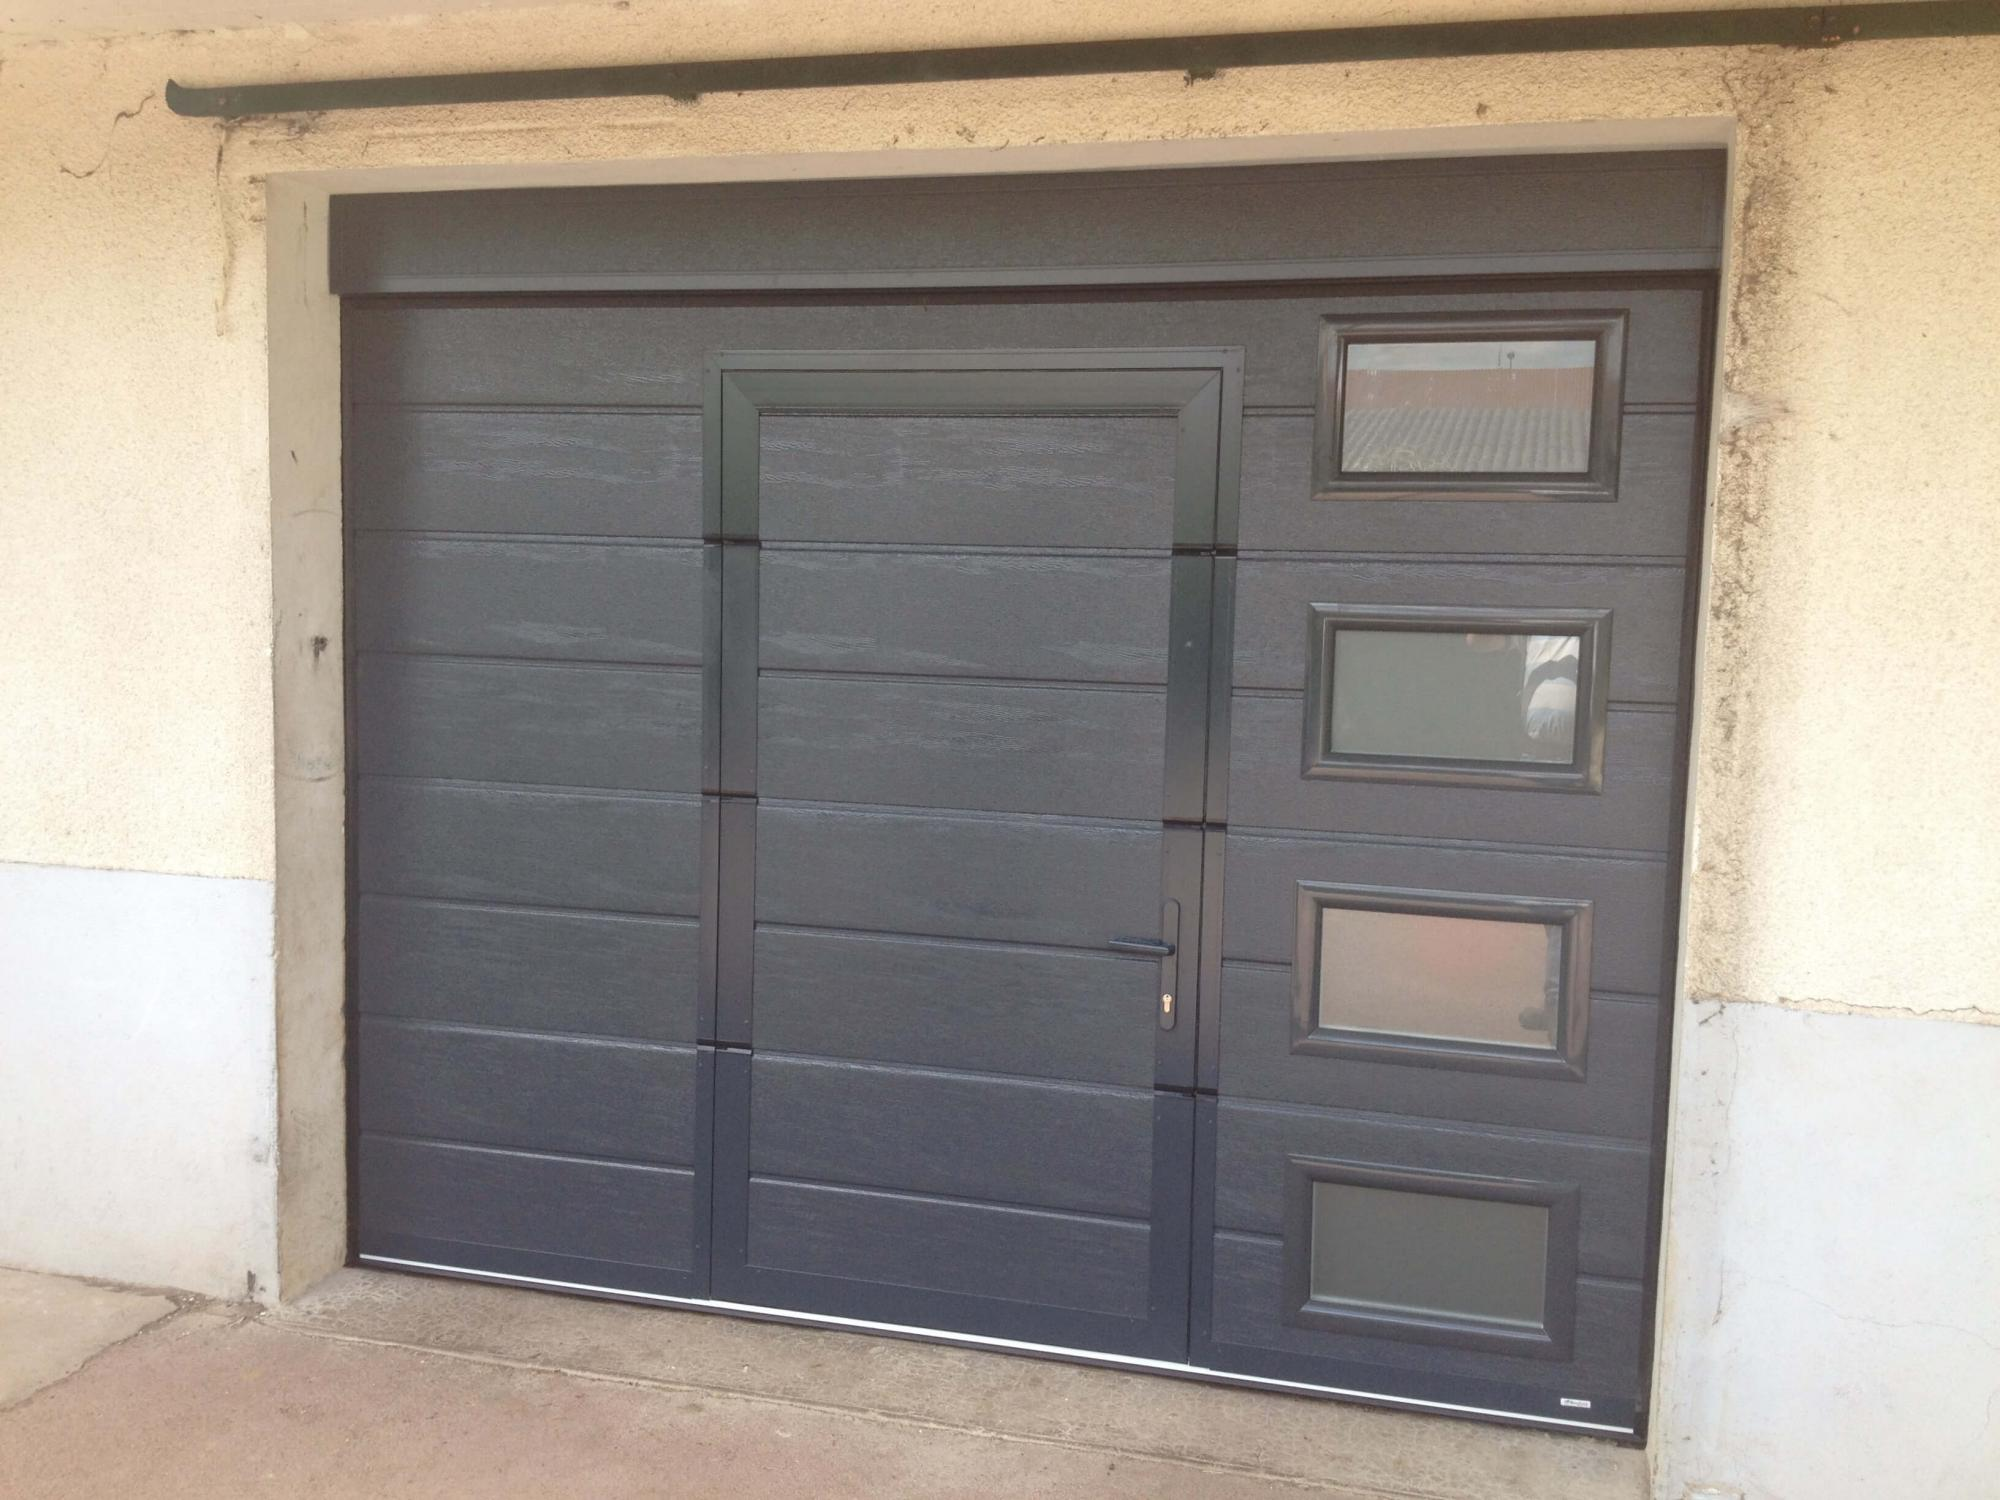 solabaie.fr/wp-content/uploads/2015/07/porte-de-garage-sectionnelle